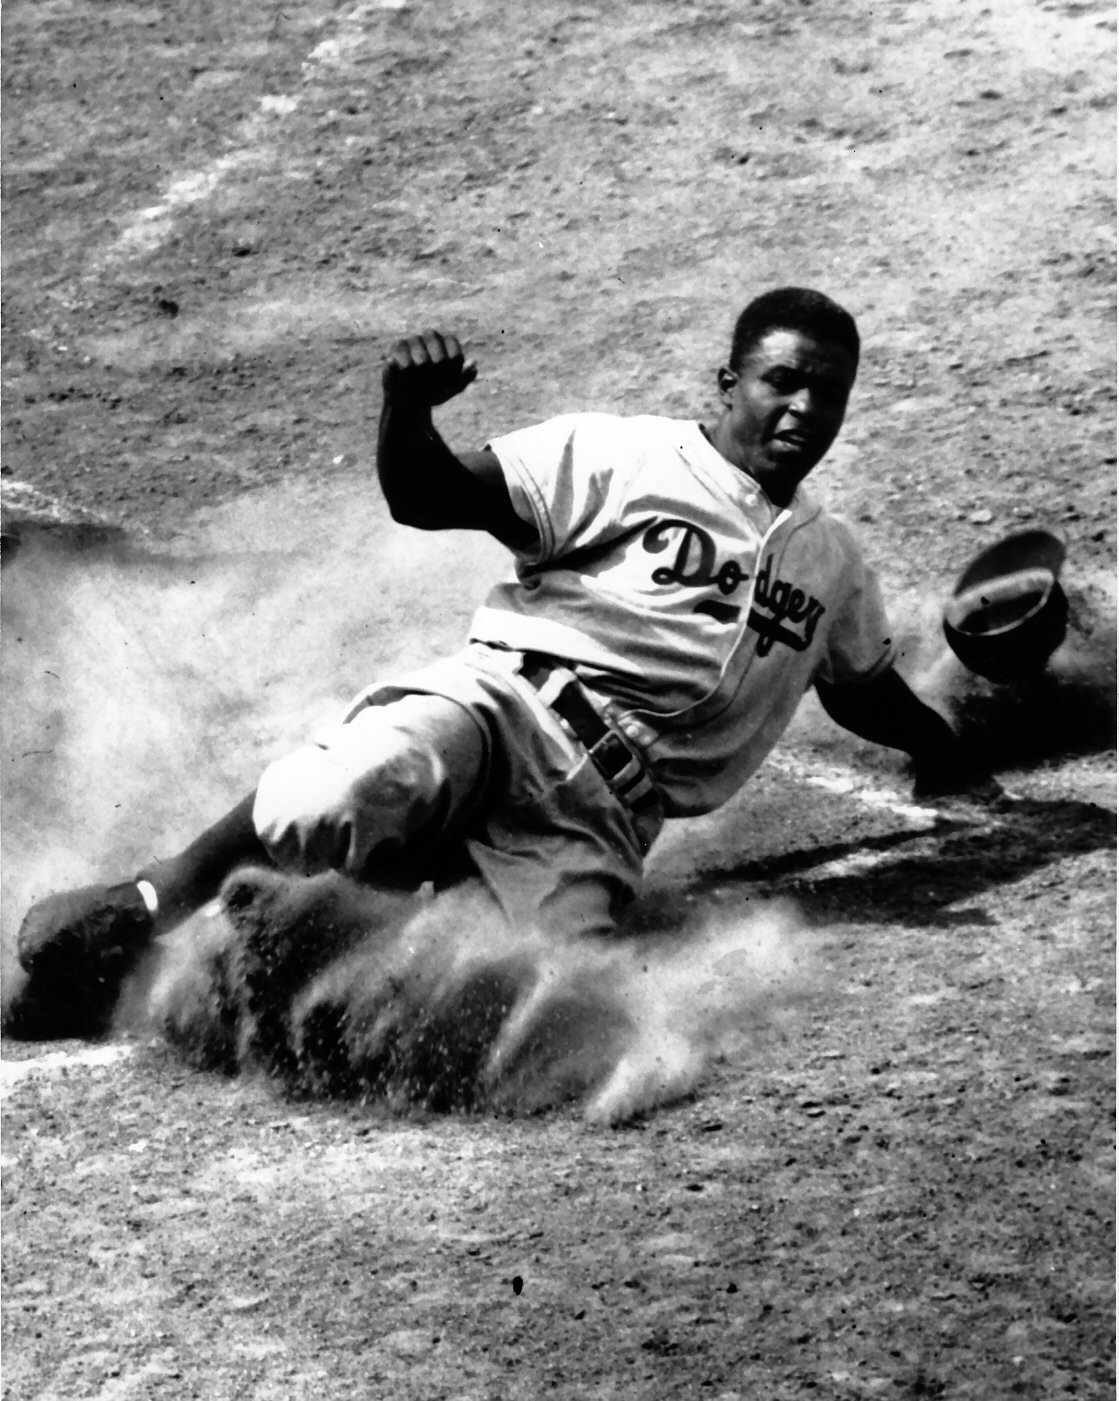 """an introduction to the life of jackie roosevelt robinson in major league baseball Jack roosevelt, popularly known as jackie robinson,  was the first black major league baseball player  """"barry bond and jackie robinson essay example."""